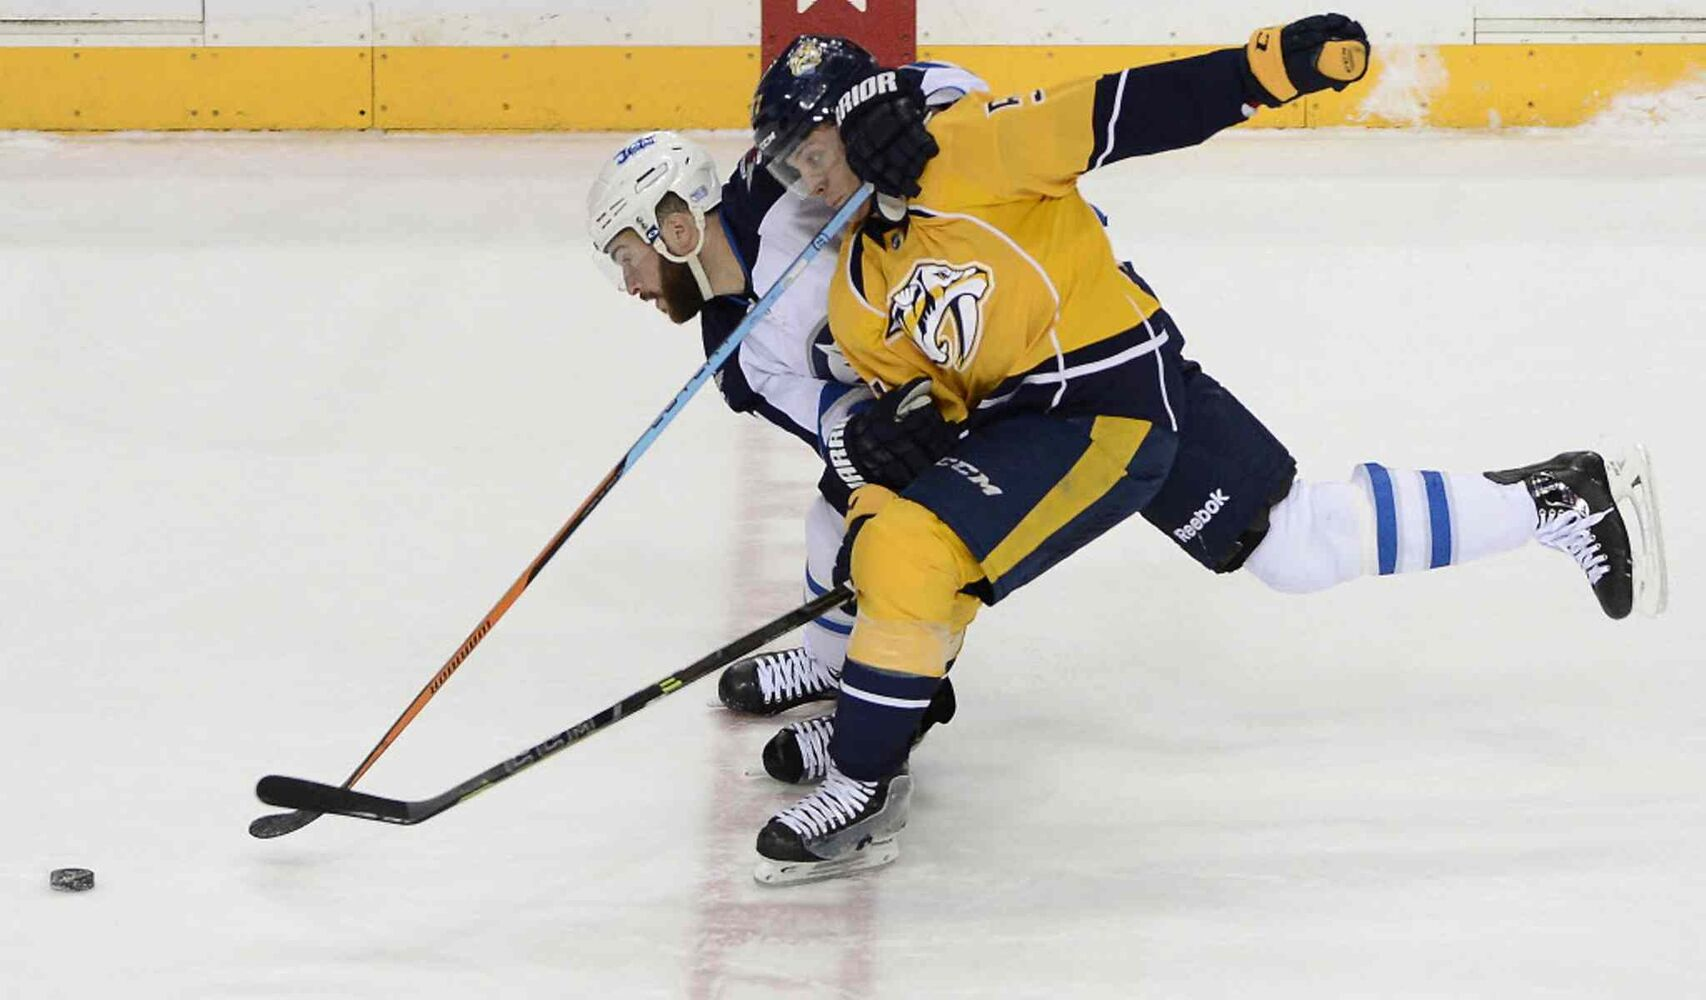 Winnipeg Jets right wing Anthony Peluso, back, and Nashville Predators left wing Gabriel Bourque battle for the puck in the first period. (Mark Zaleski / The Associated Press)